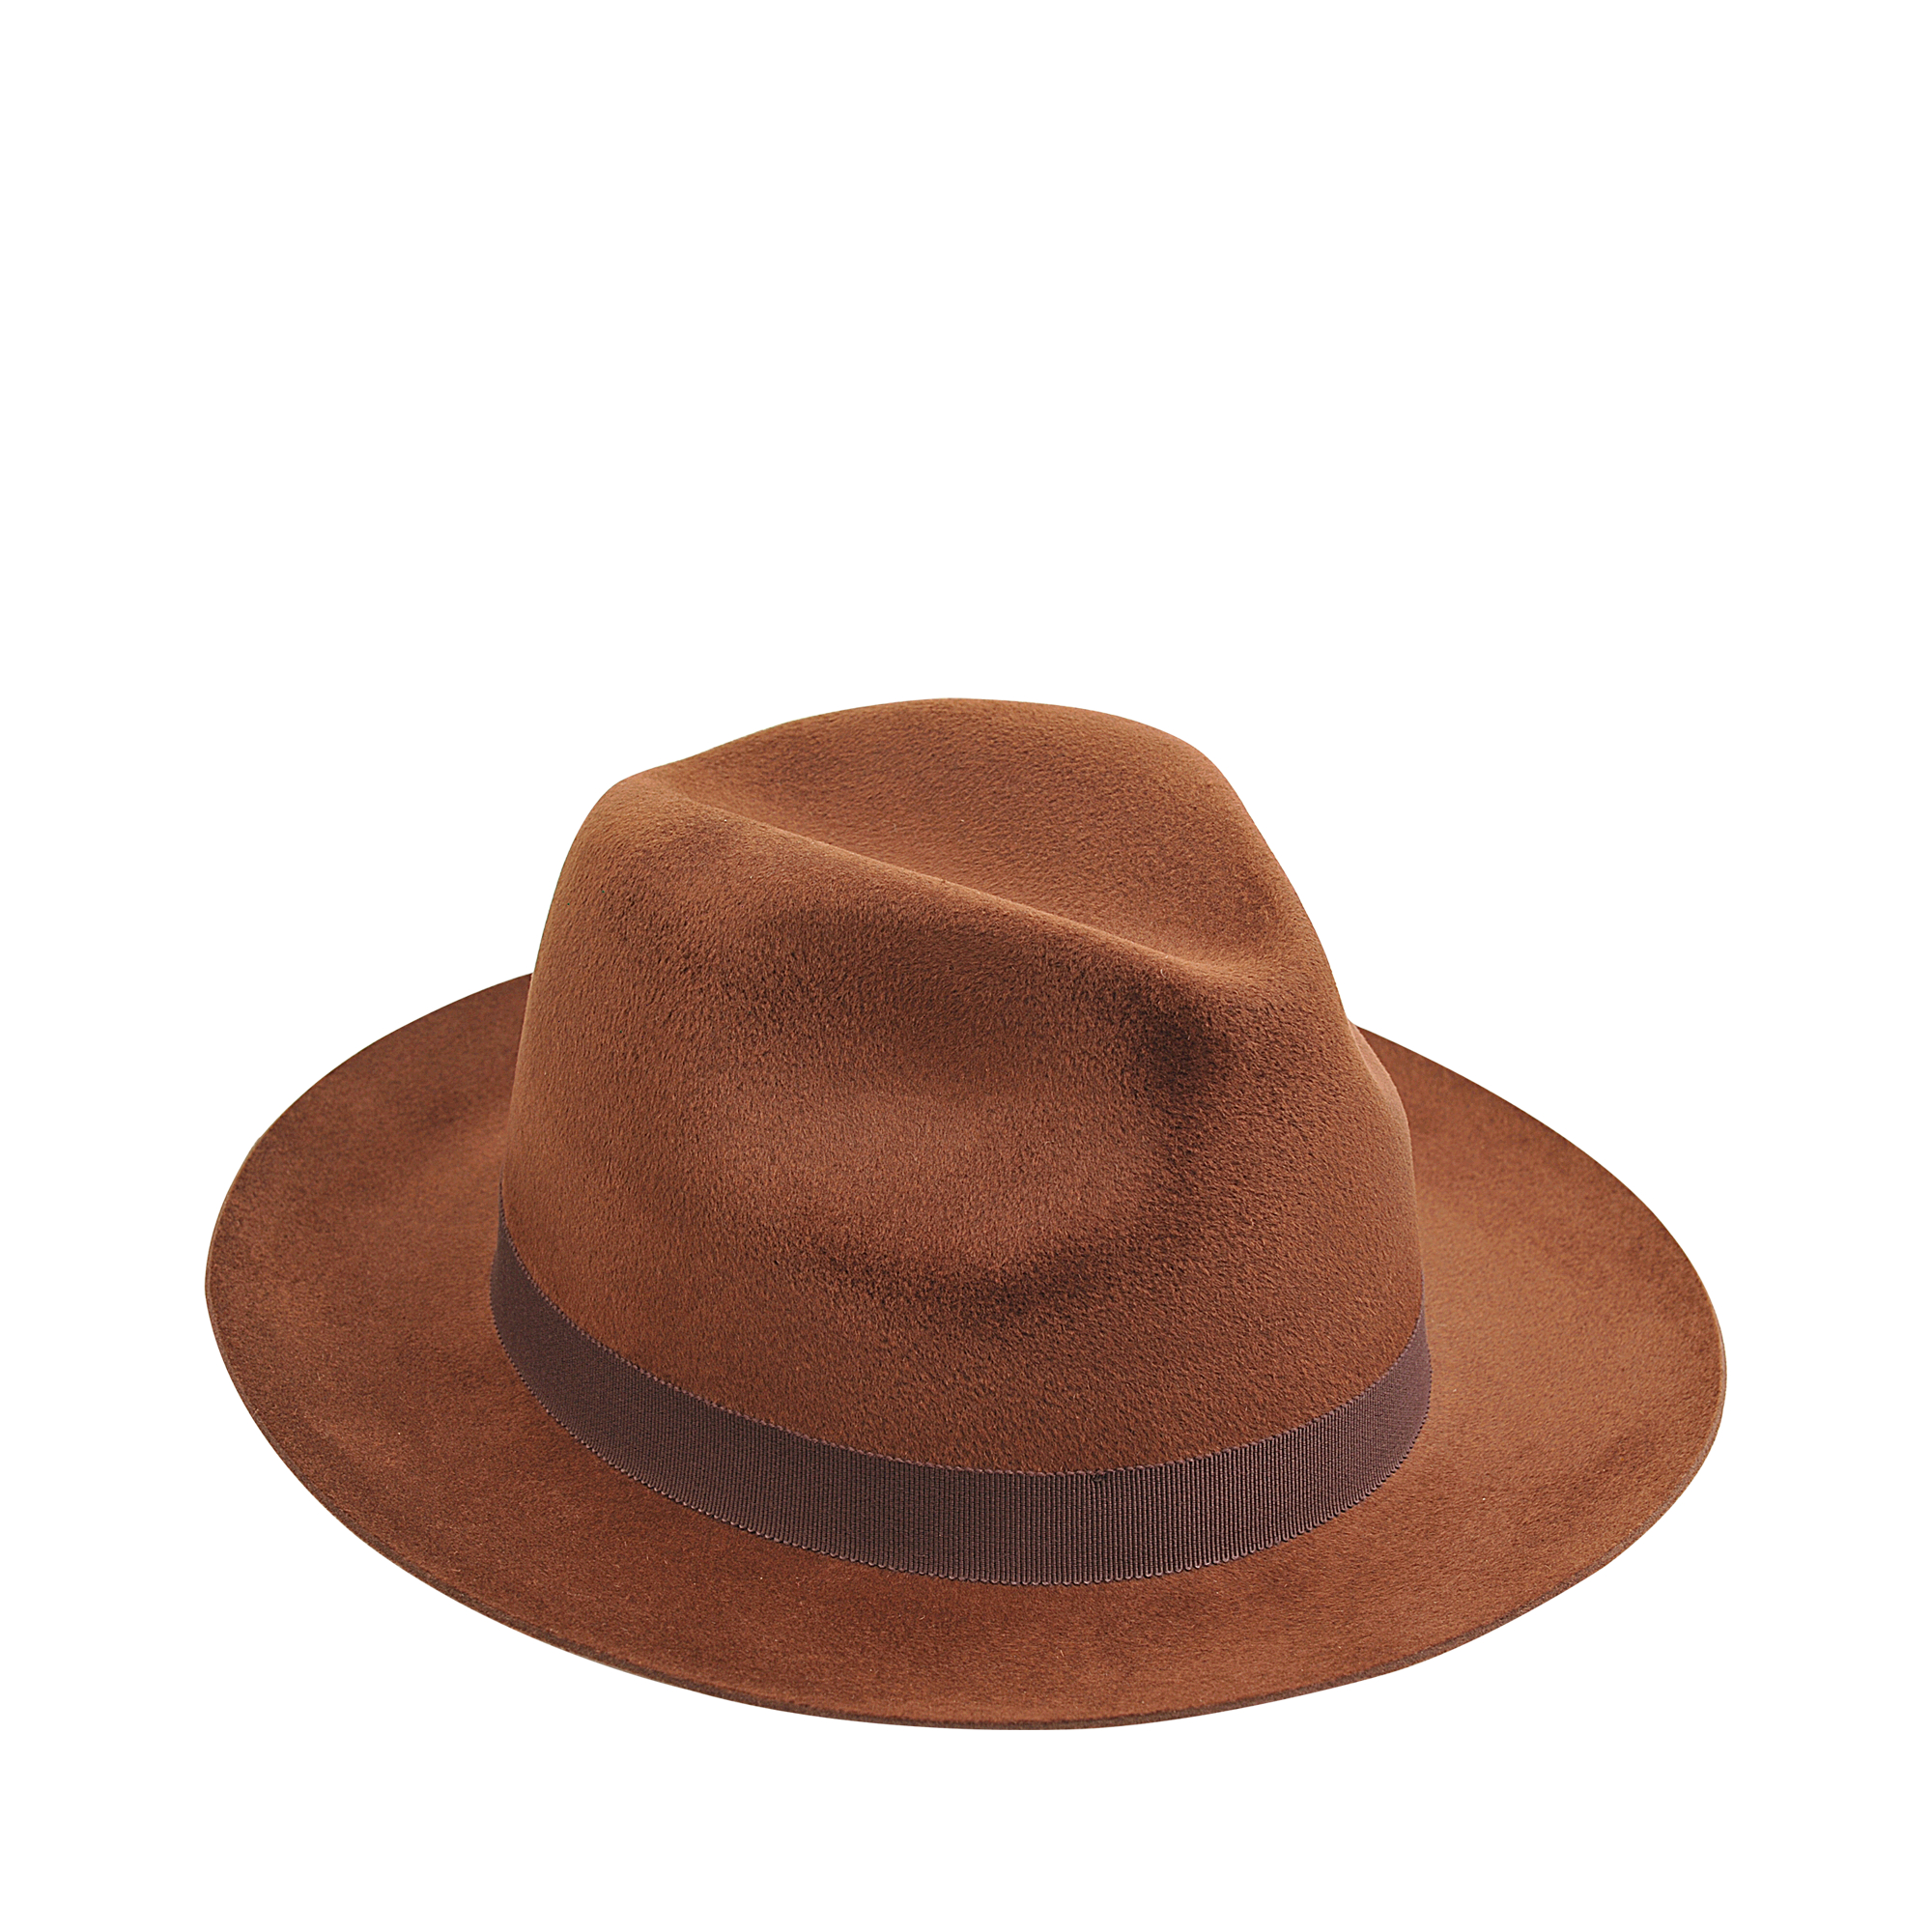 Lyst - Larose Small Fedora Hat in Brown 3bfb5e3f6d7